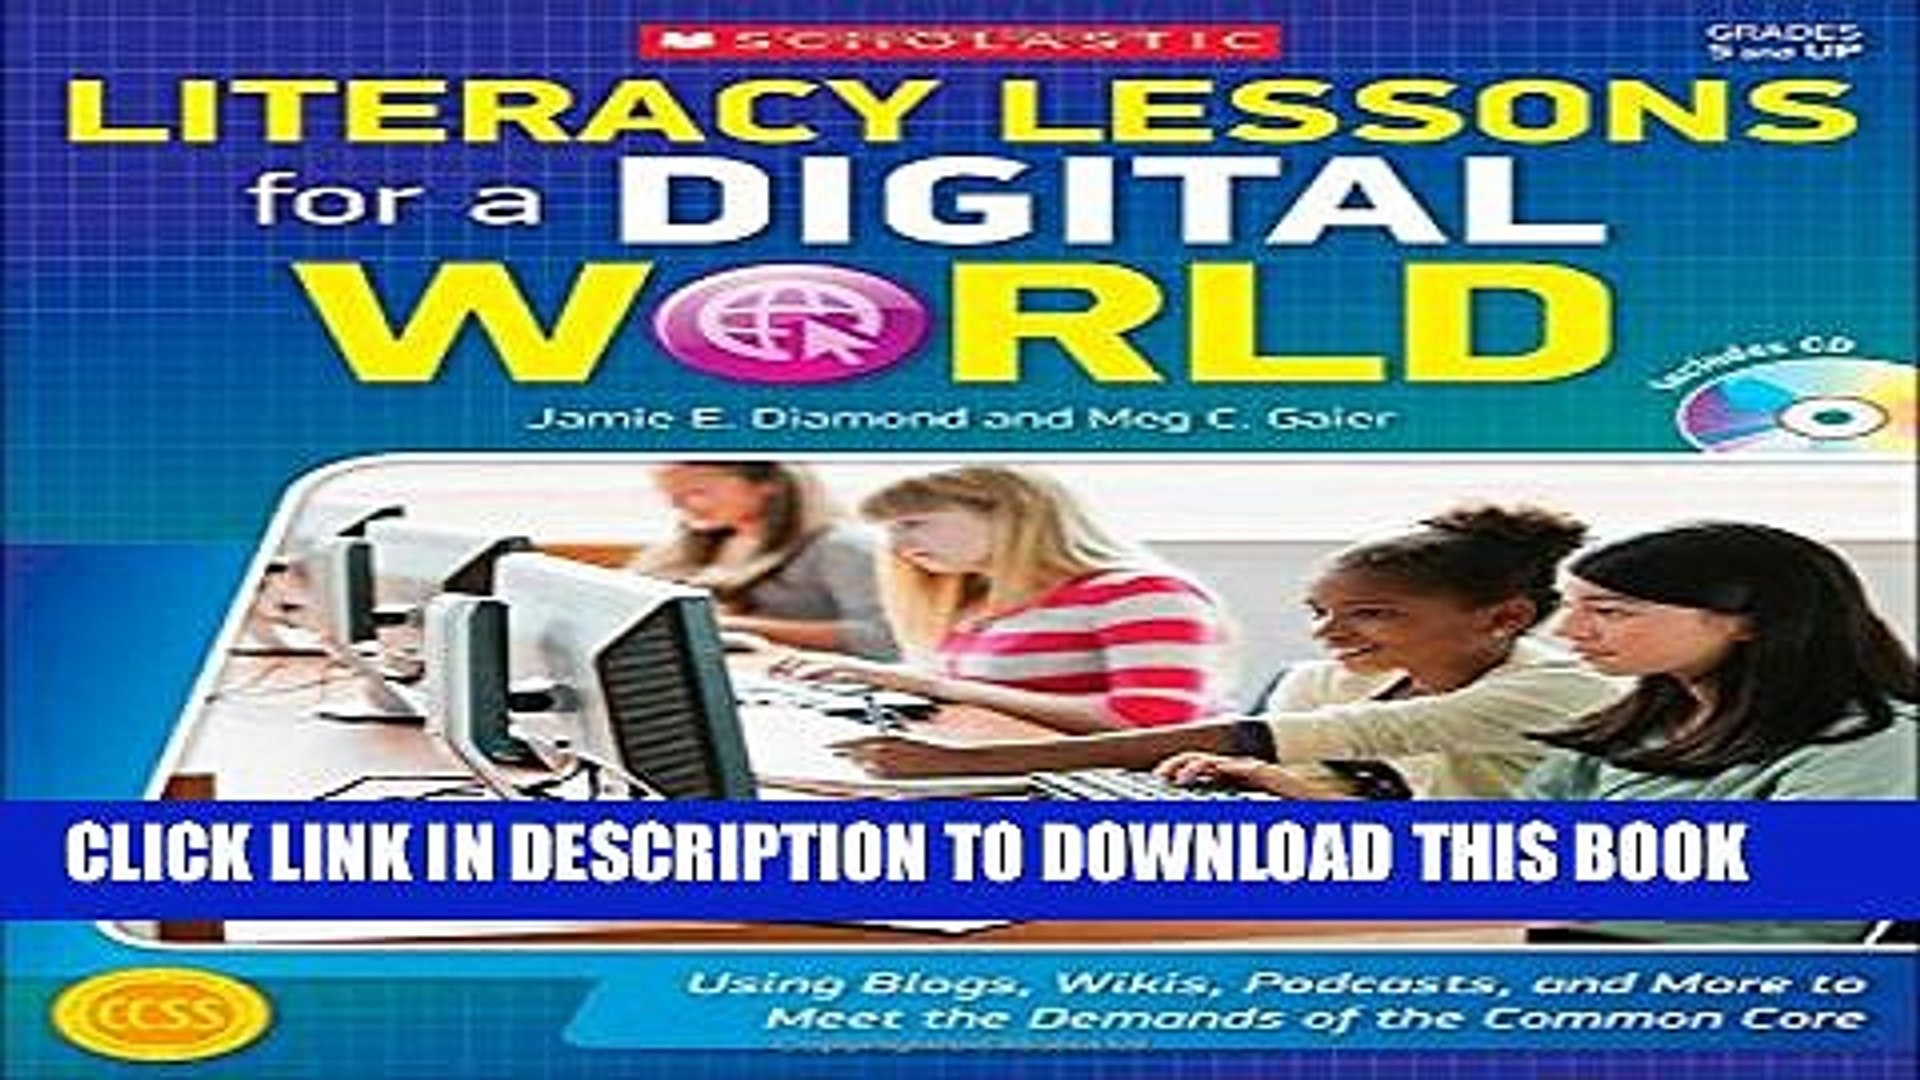 [PDF] Literacy Lessons for a Digital World: Using Blogs, Wikis,   Podcasts, and More to Meet the